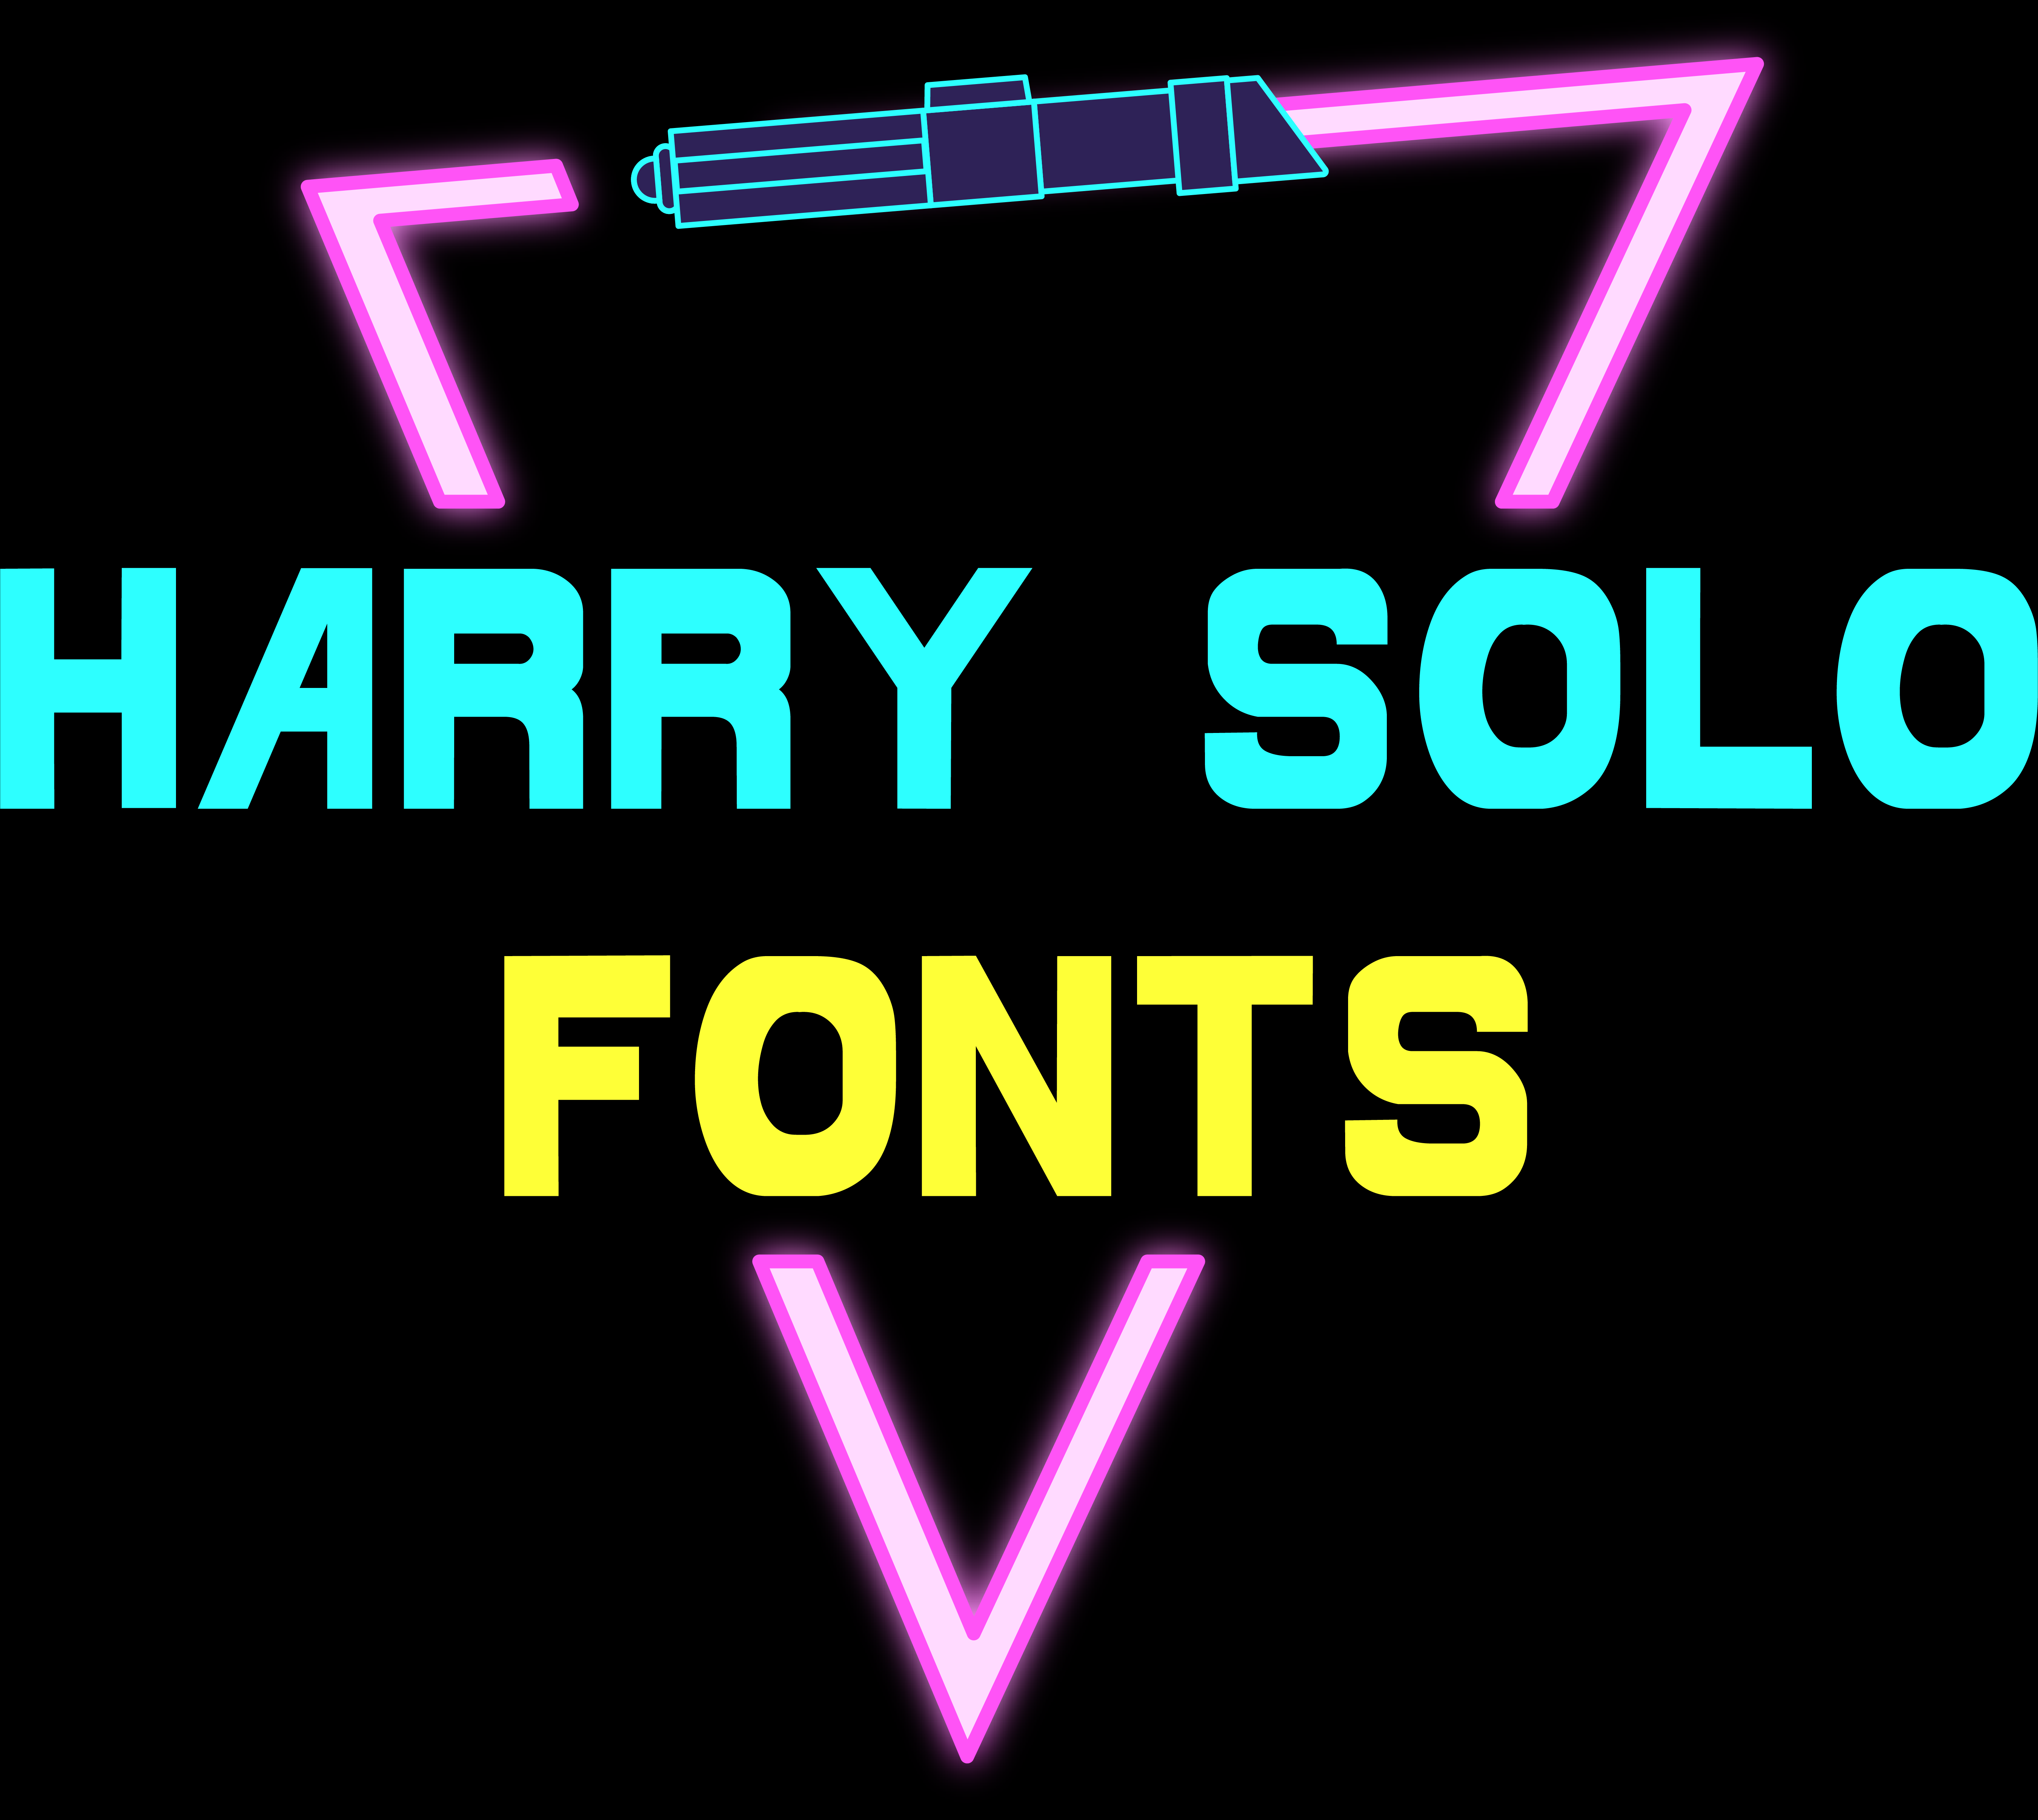 Harry Solo Fonts's account image